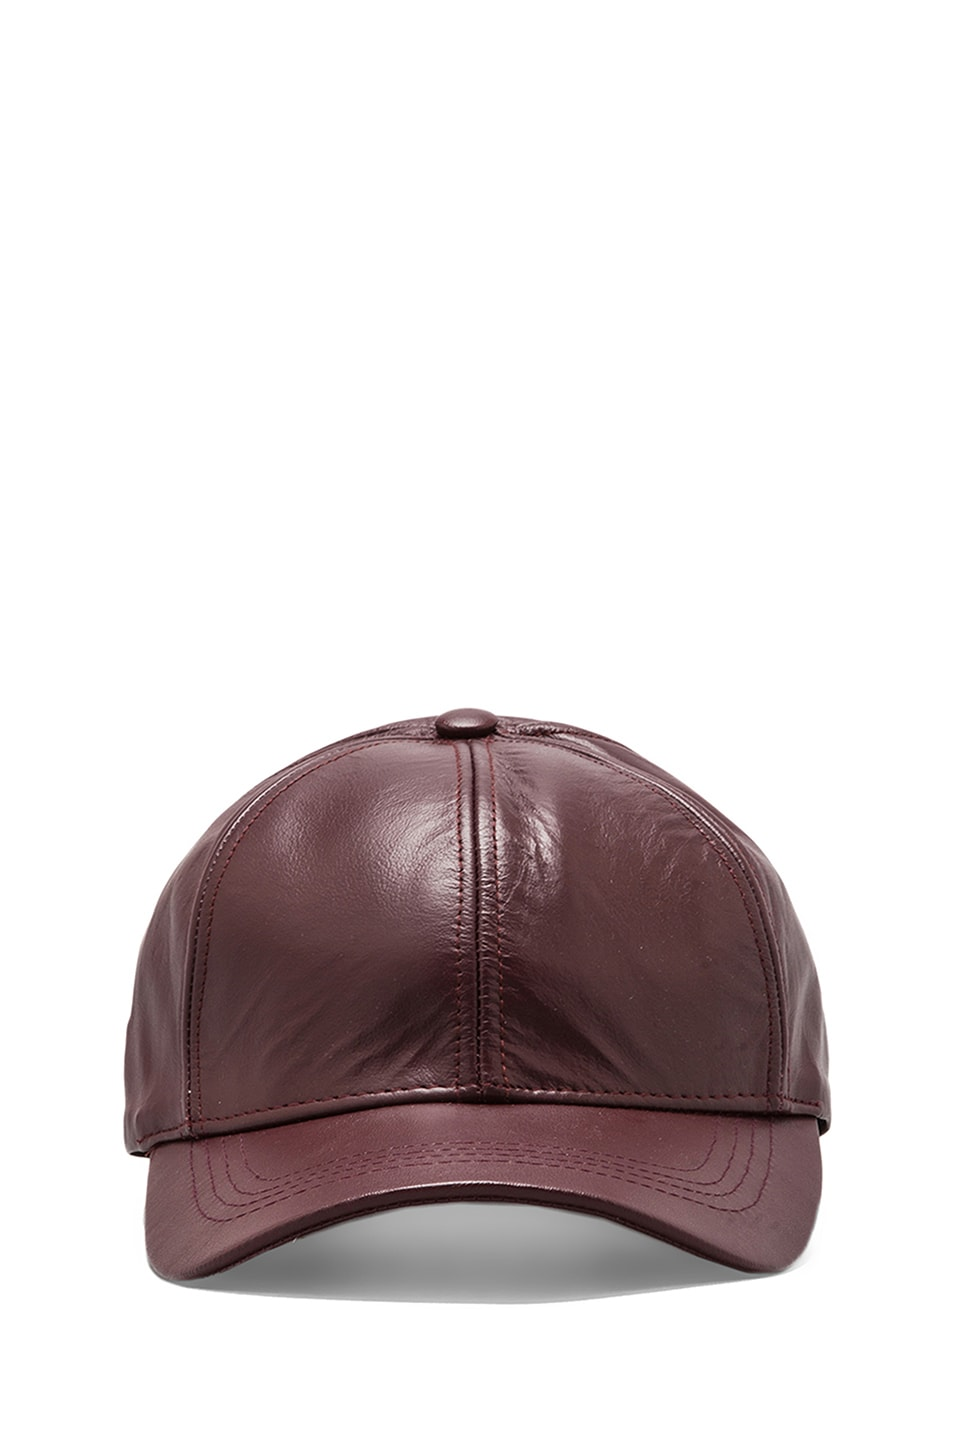 Elliott Label Boss Cap in Oxblood